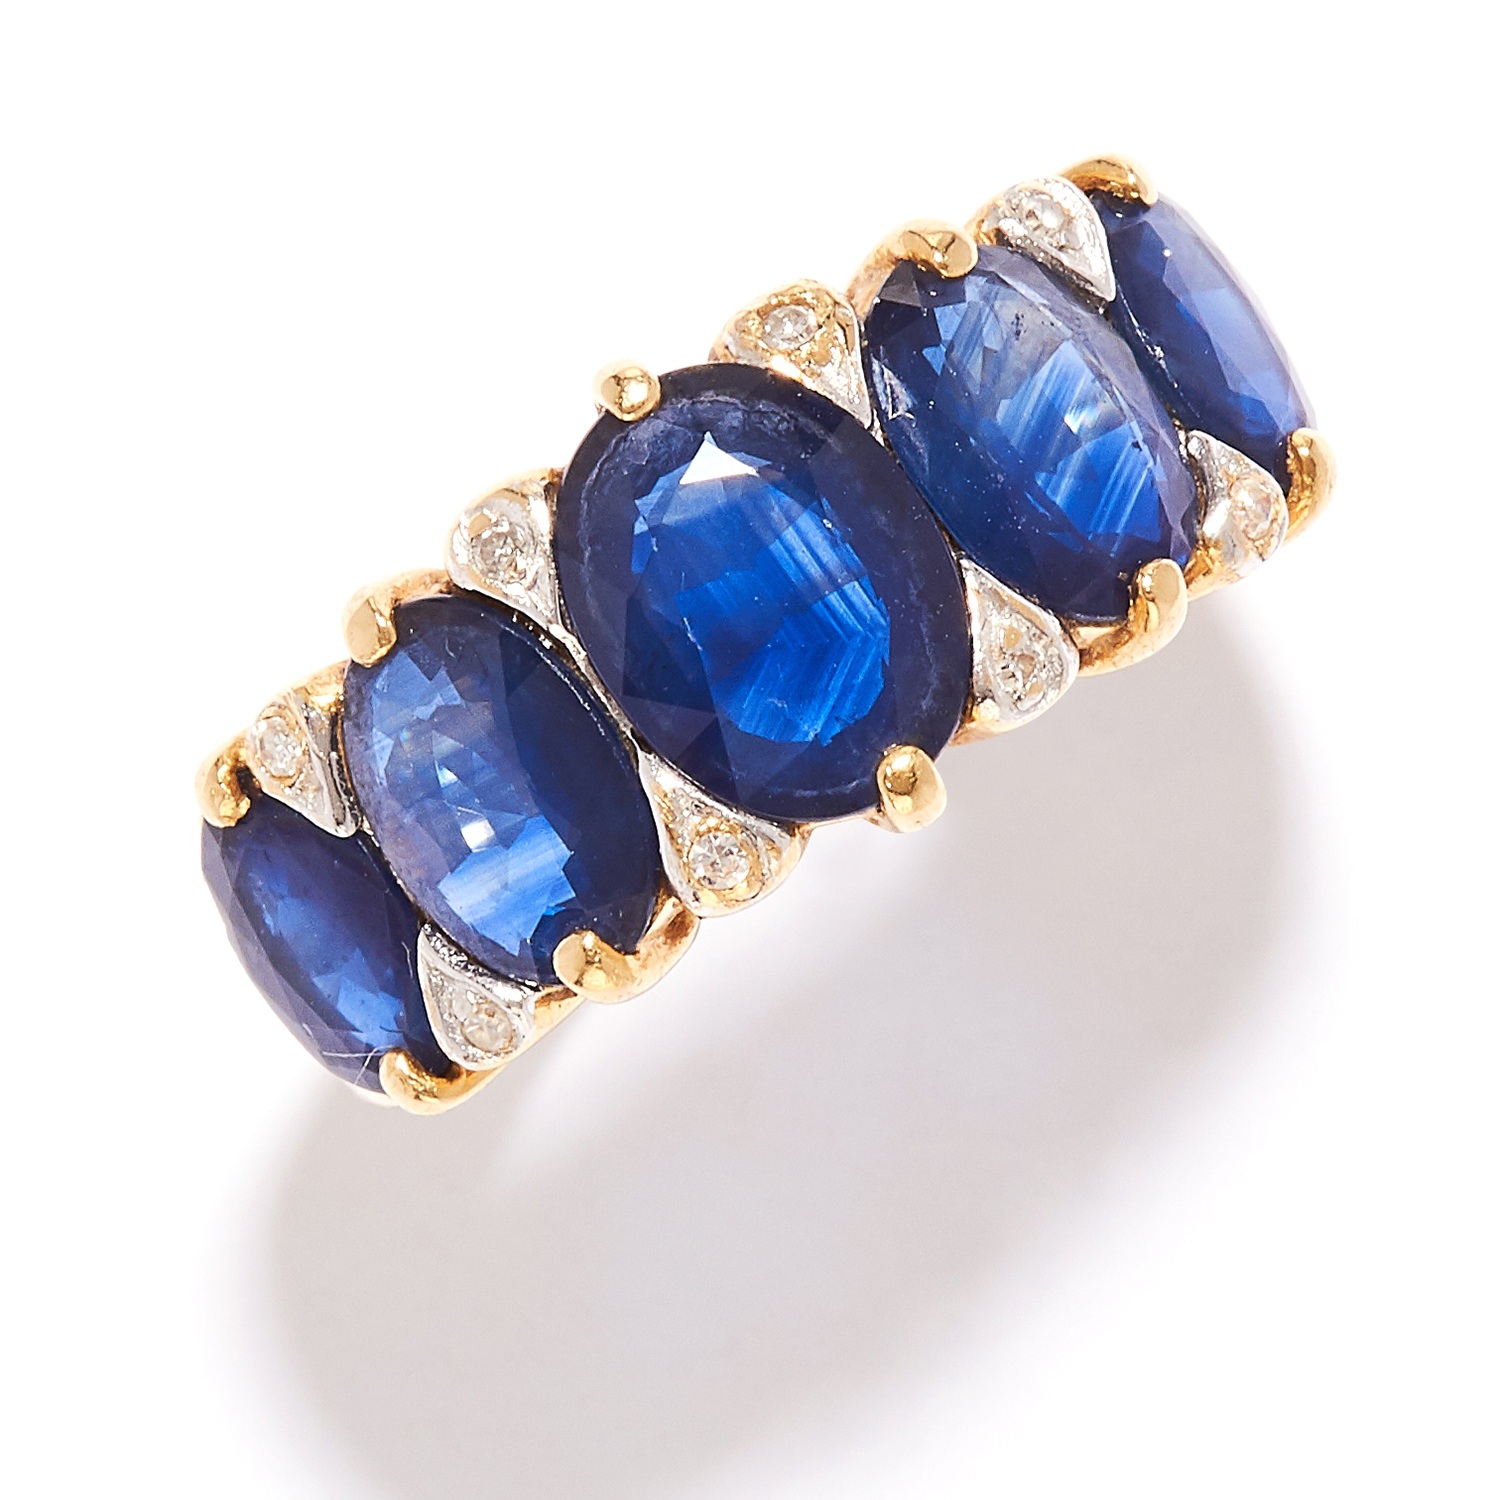 Los 24 - SAPPHIRE AND DIAMOND RING in high carat yellow gold, set with a row of five graduated oval cut